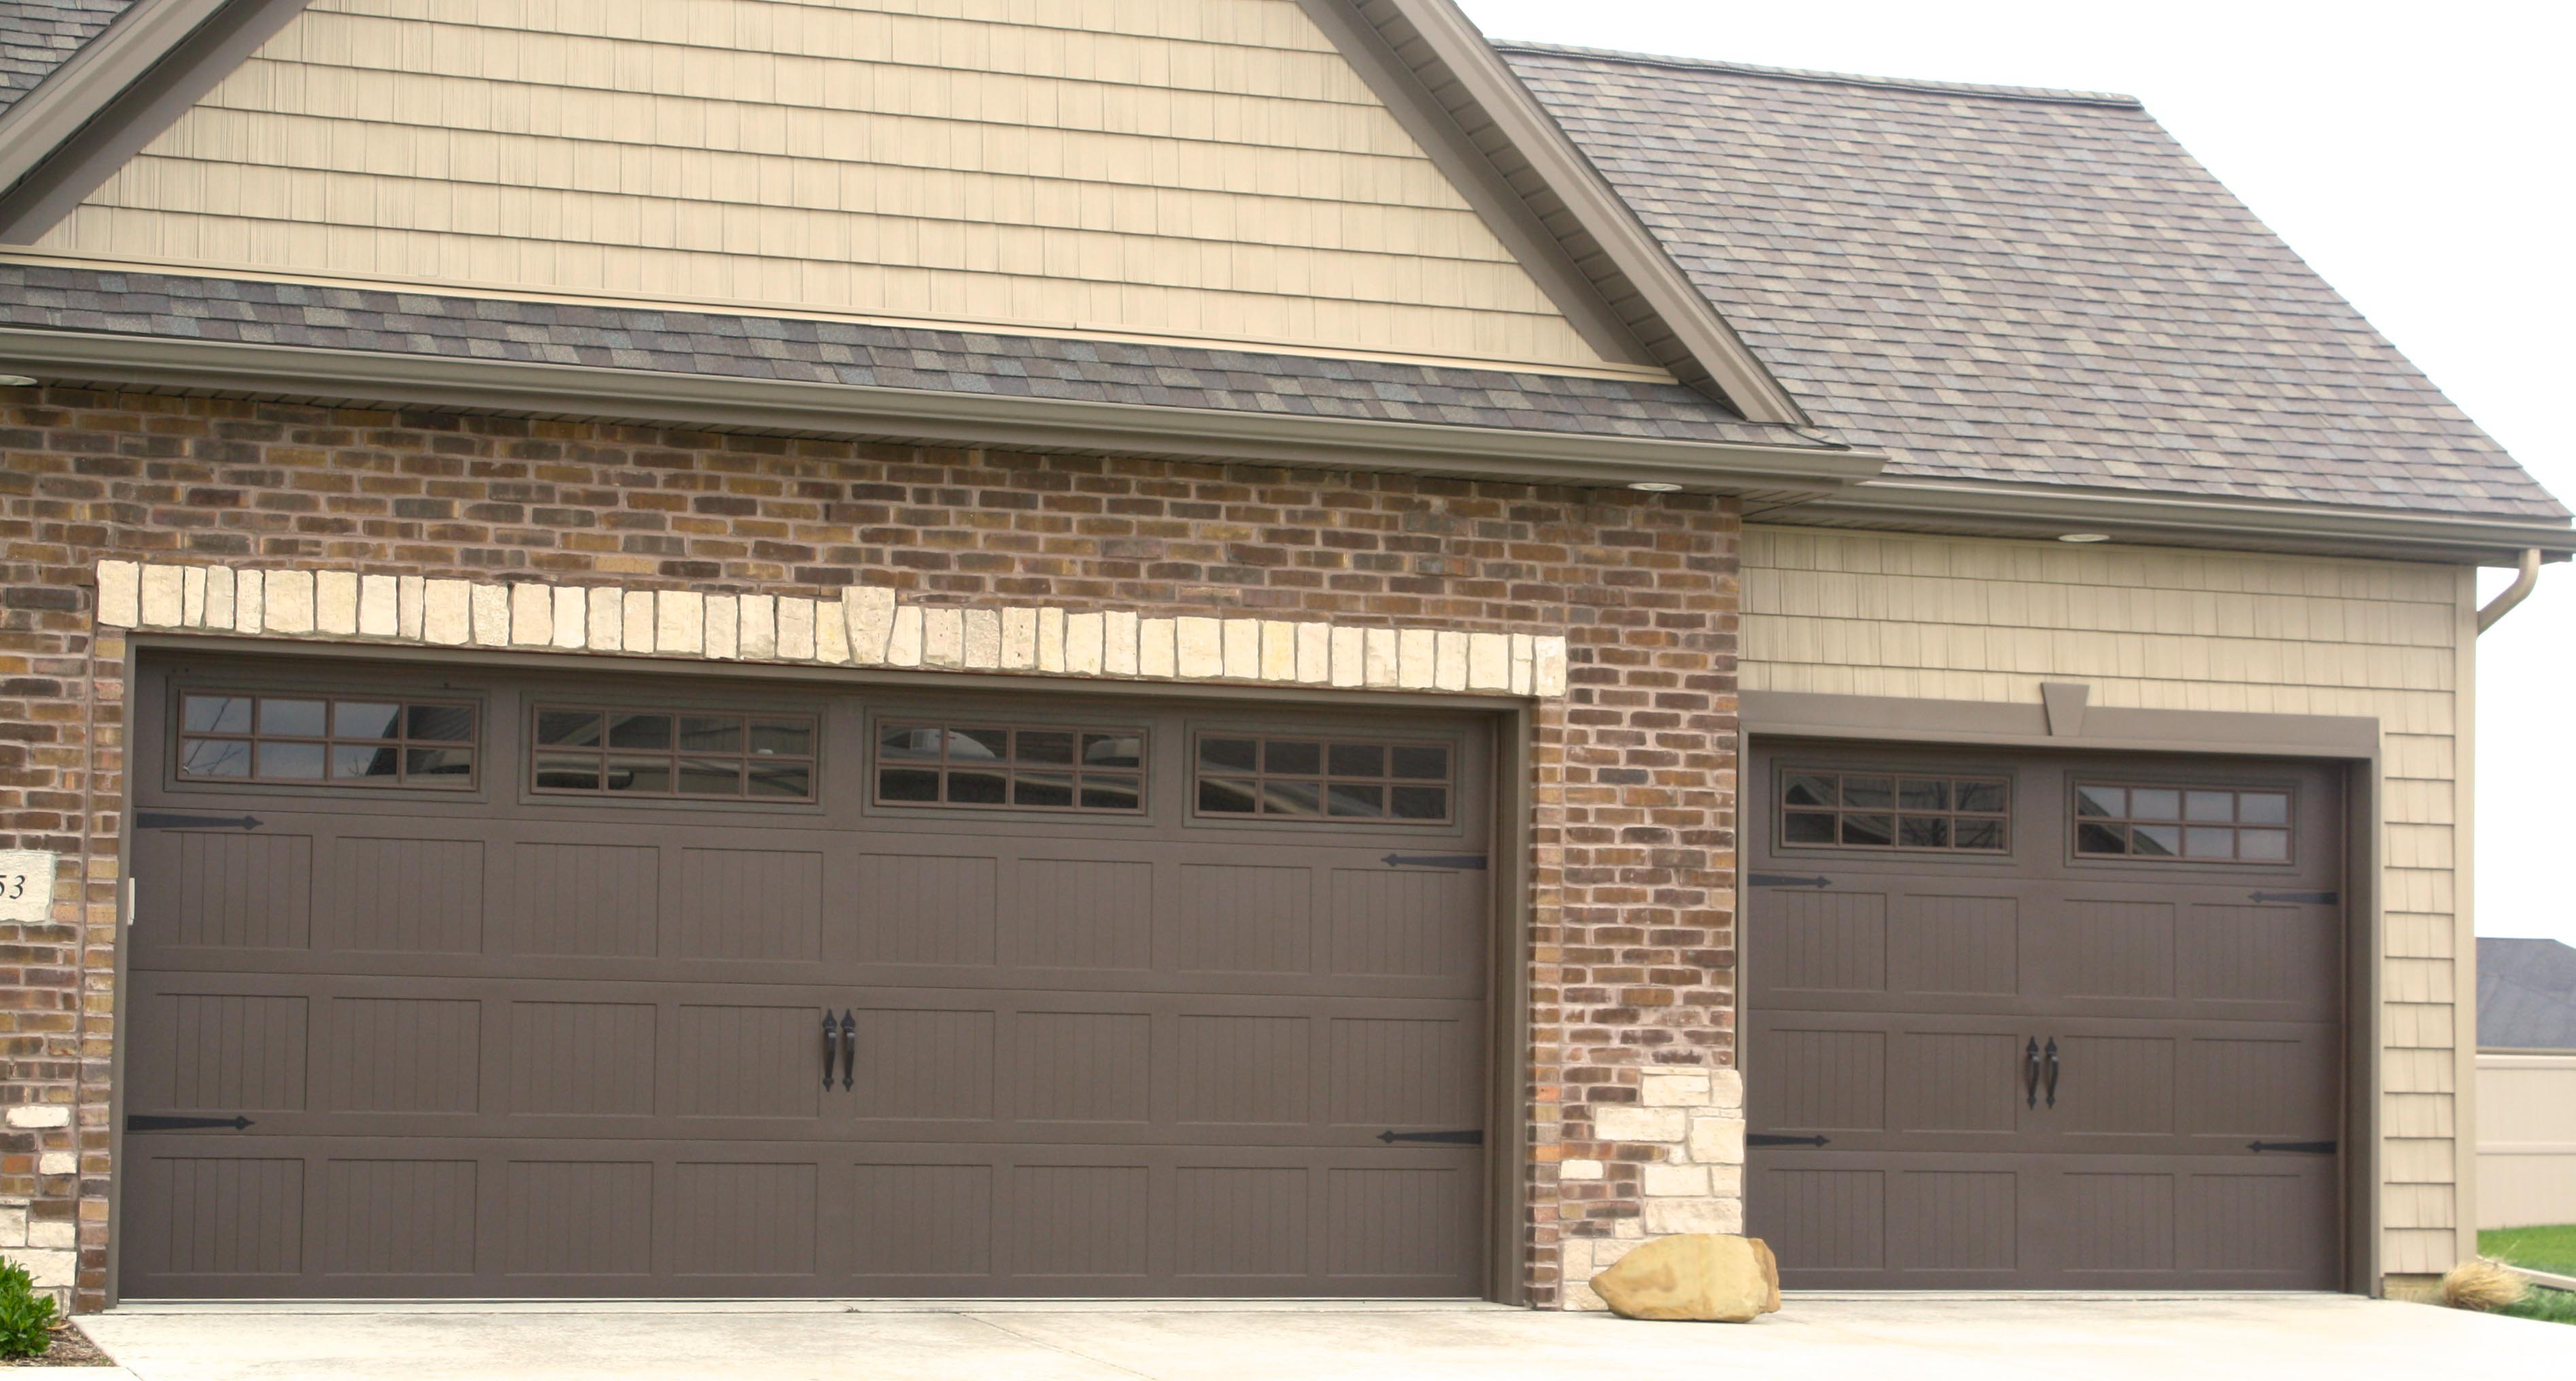 Brown Garage Doors With Windows brown-carriage-style-garage-door-in-bloomginton-il-with-gridded